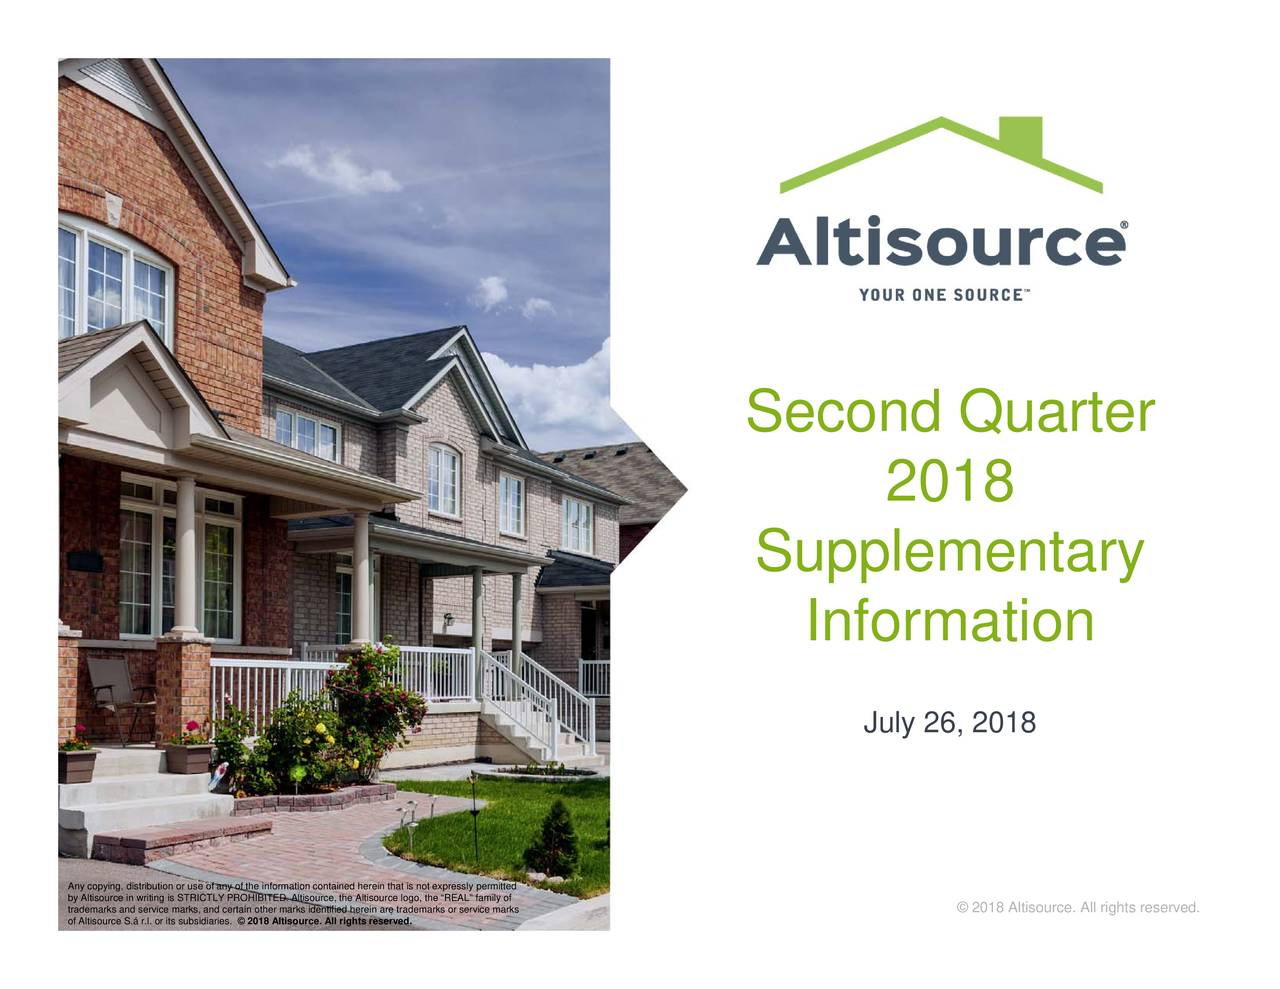 "© 2018 Altisource. All rights reserved. 2018 July 26, 2018 Information Supplementary Second Quarter © 2018 Altisource. All rights reserved. © 2018 Altisource. All rights reserved. AnbyyApyfAgrtkirici.ágriorTtksT,nbLcieinfBthaeAnlasutne,tdtrehetinarcraotperkssoL""eaiitcofarksdm"